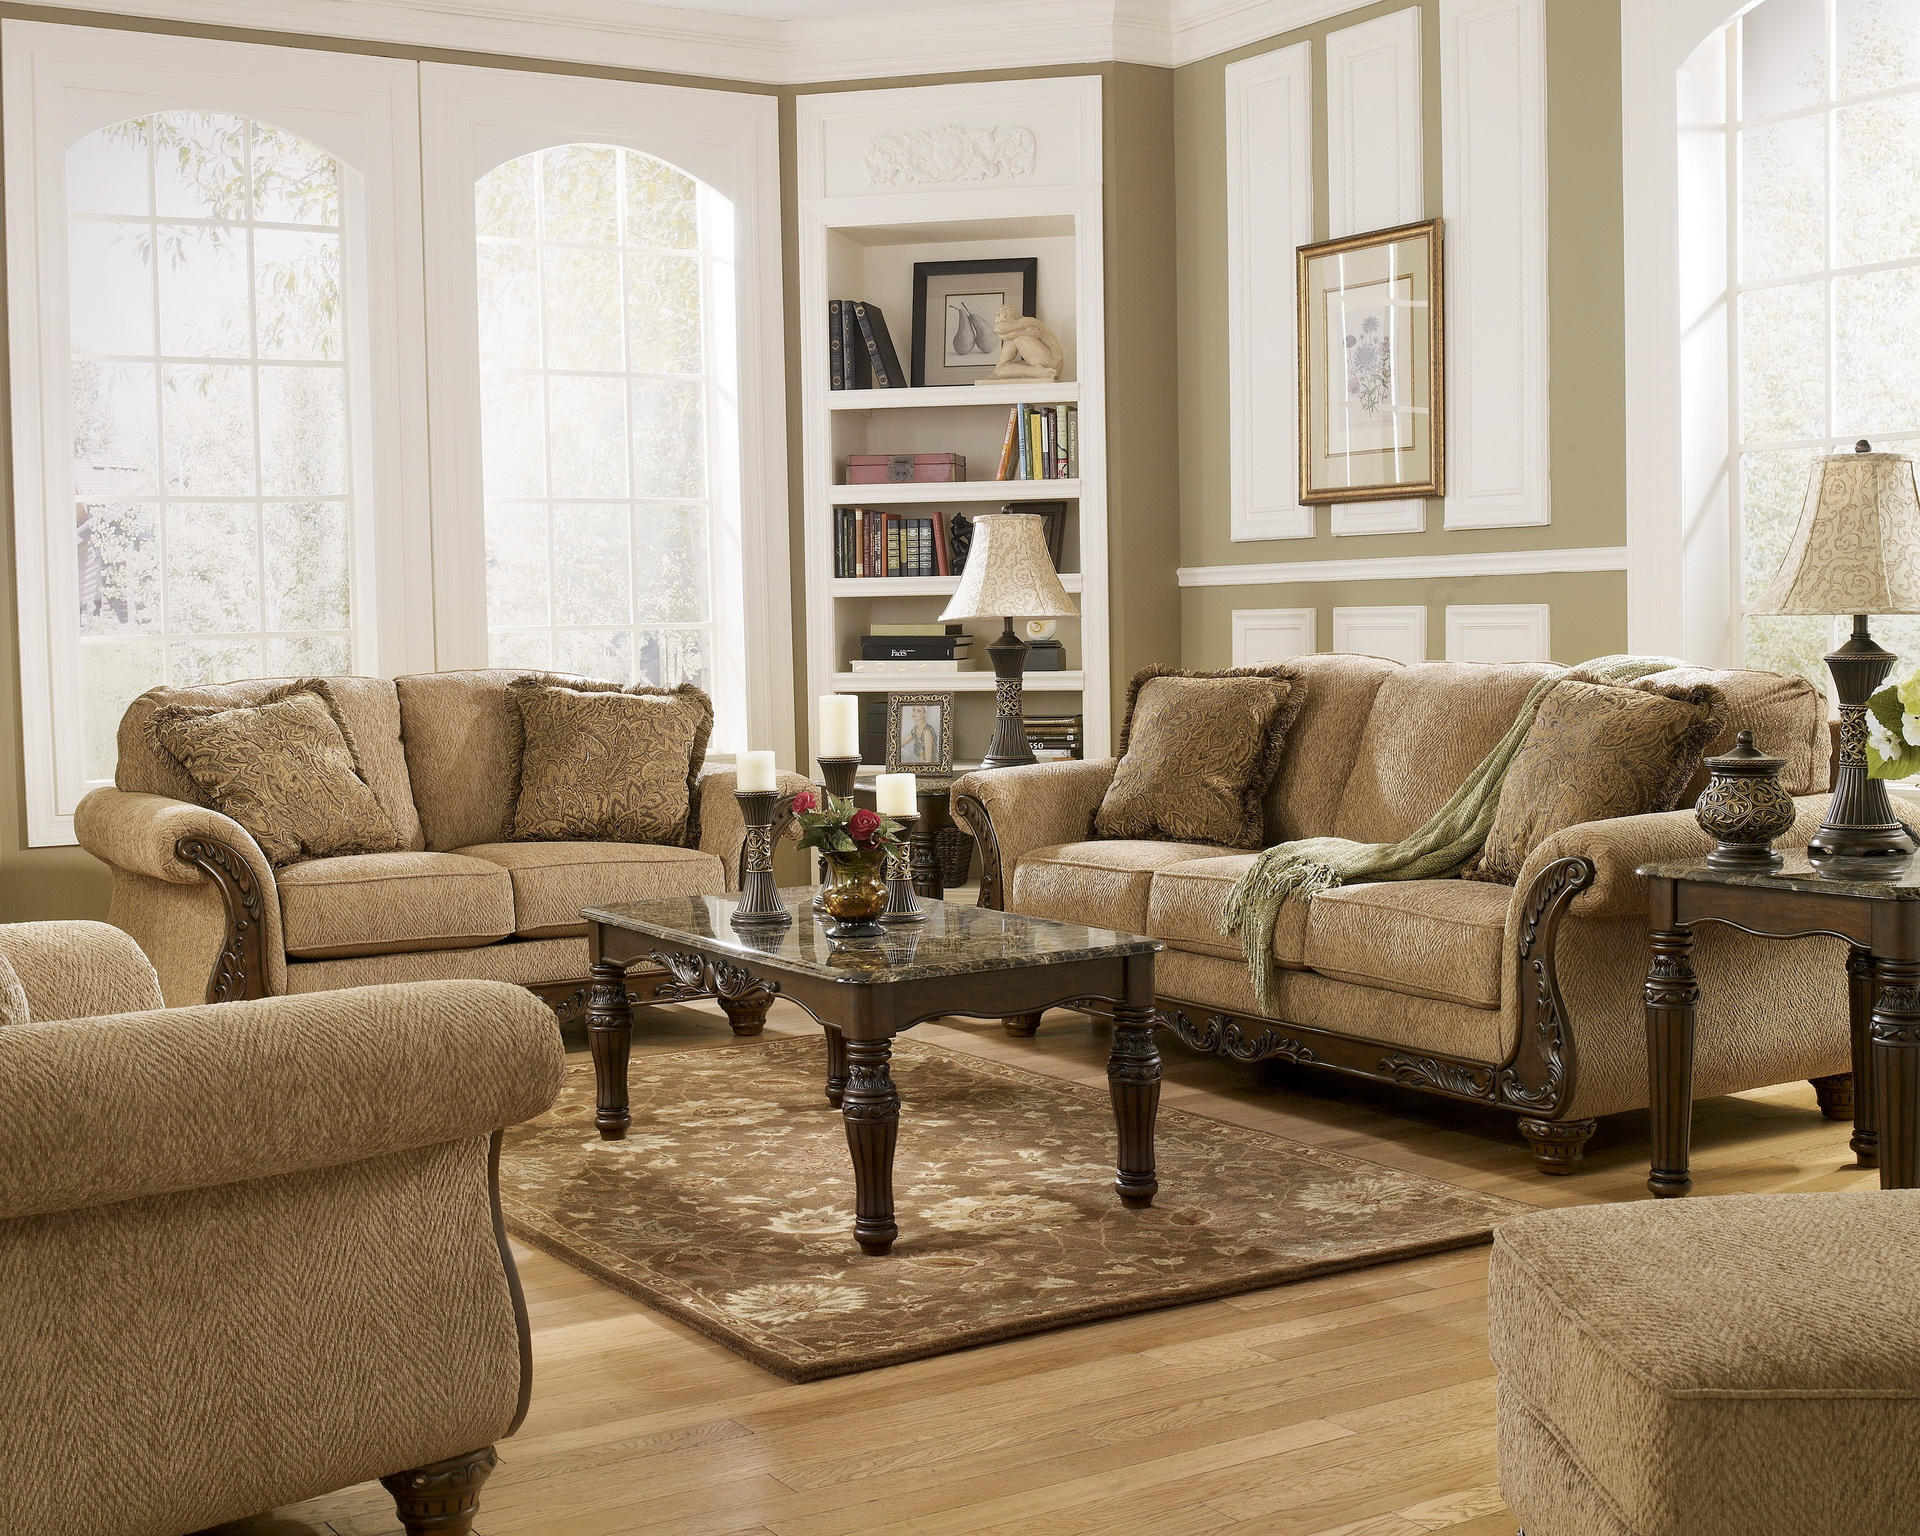 25 facts to know about ashley furniture living room sets for Furniture living room set